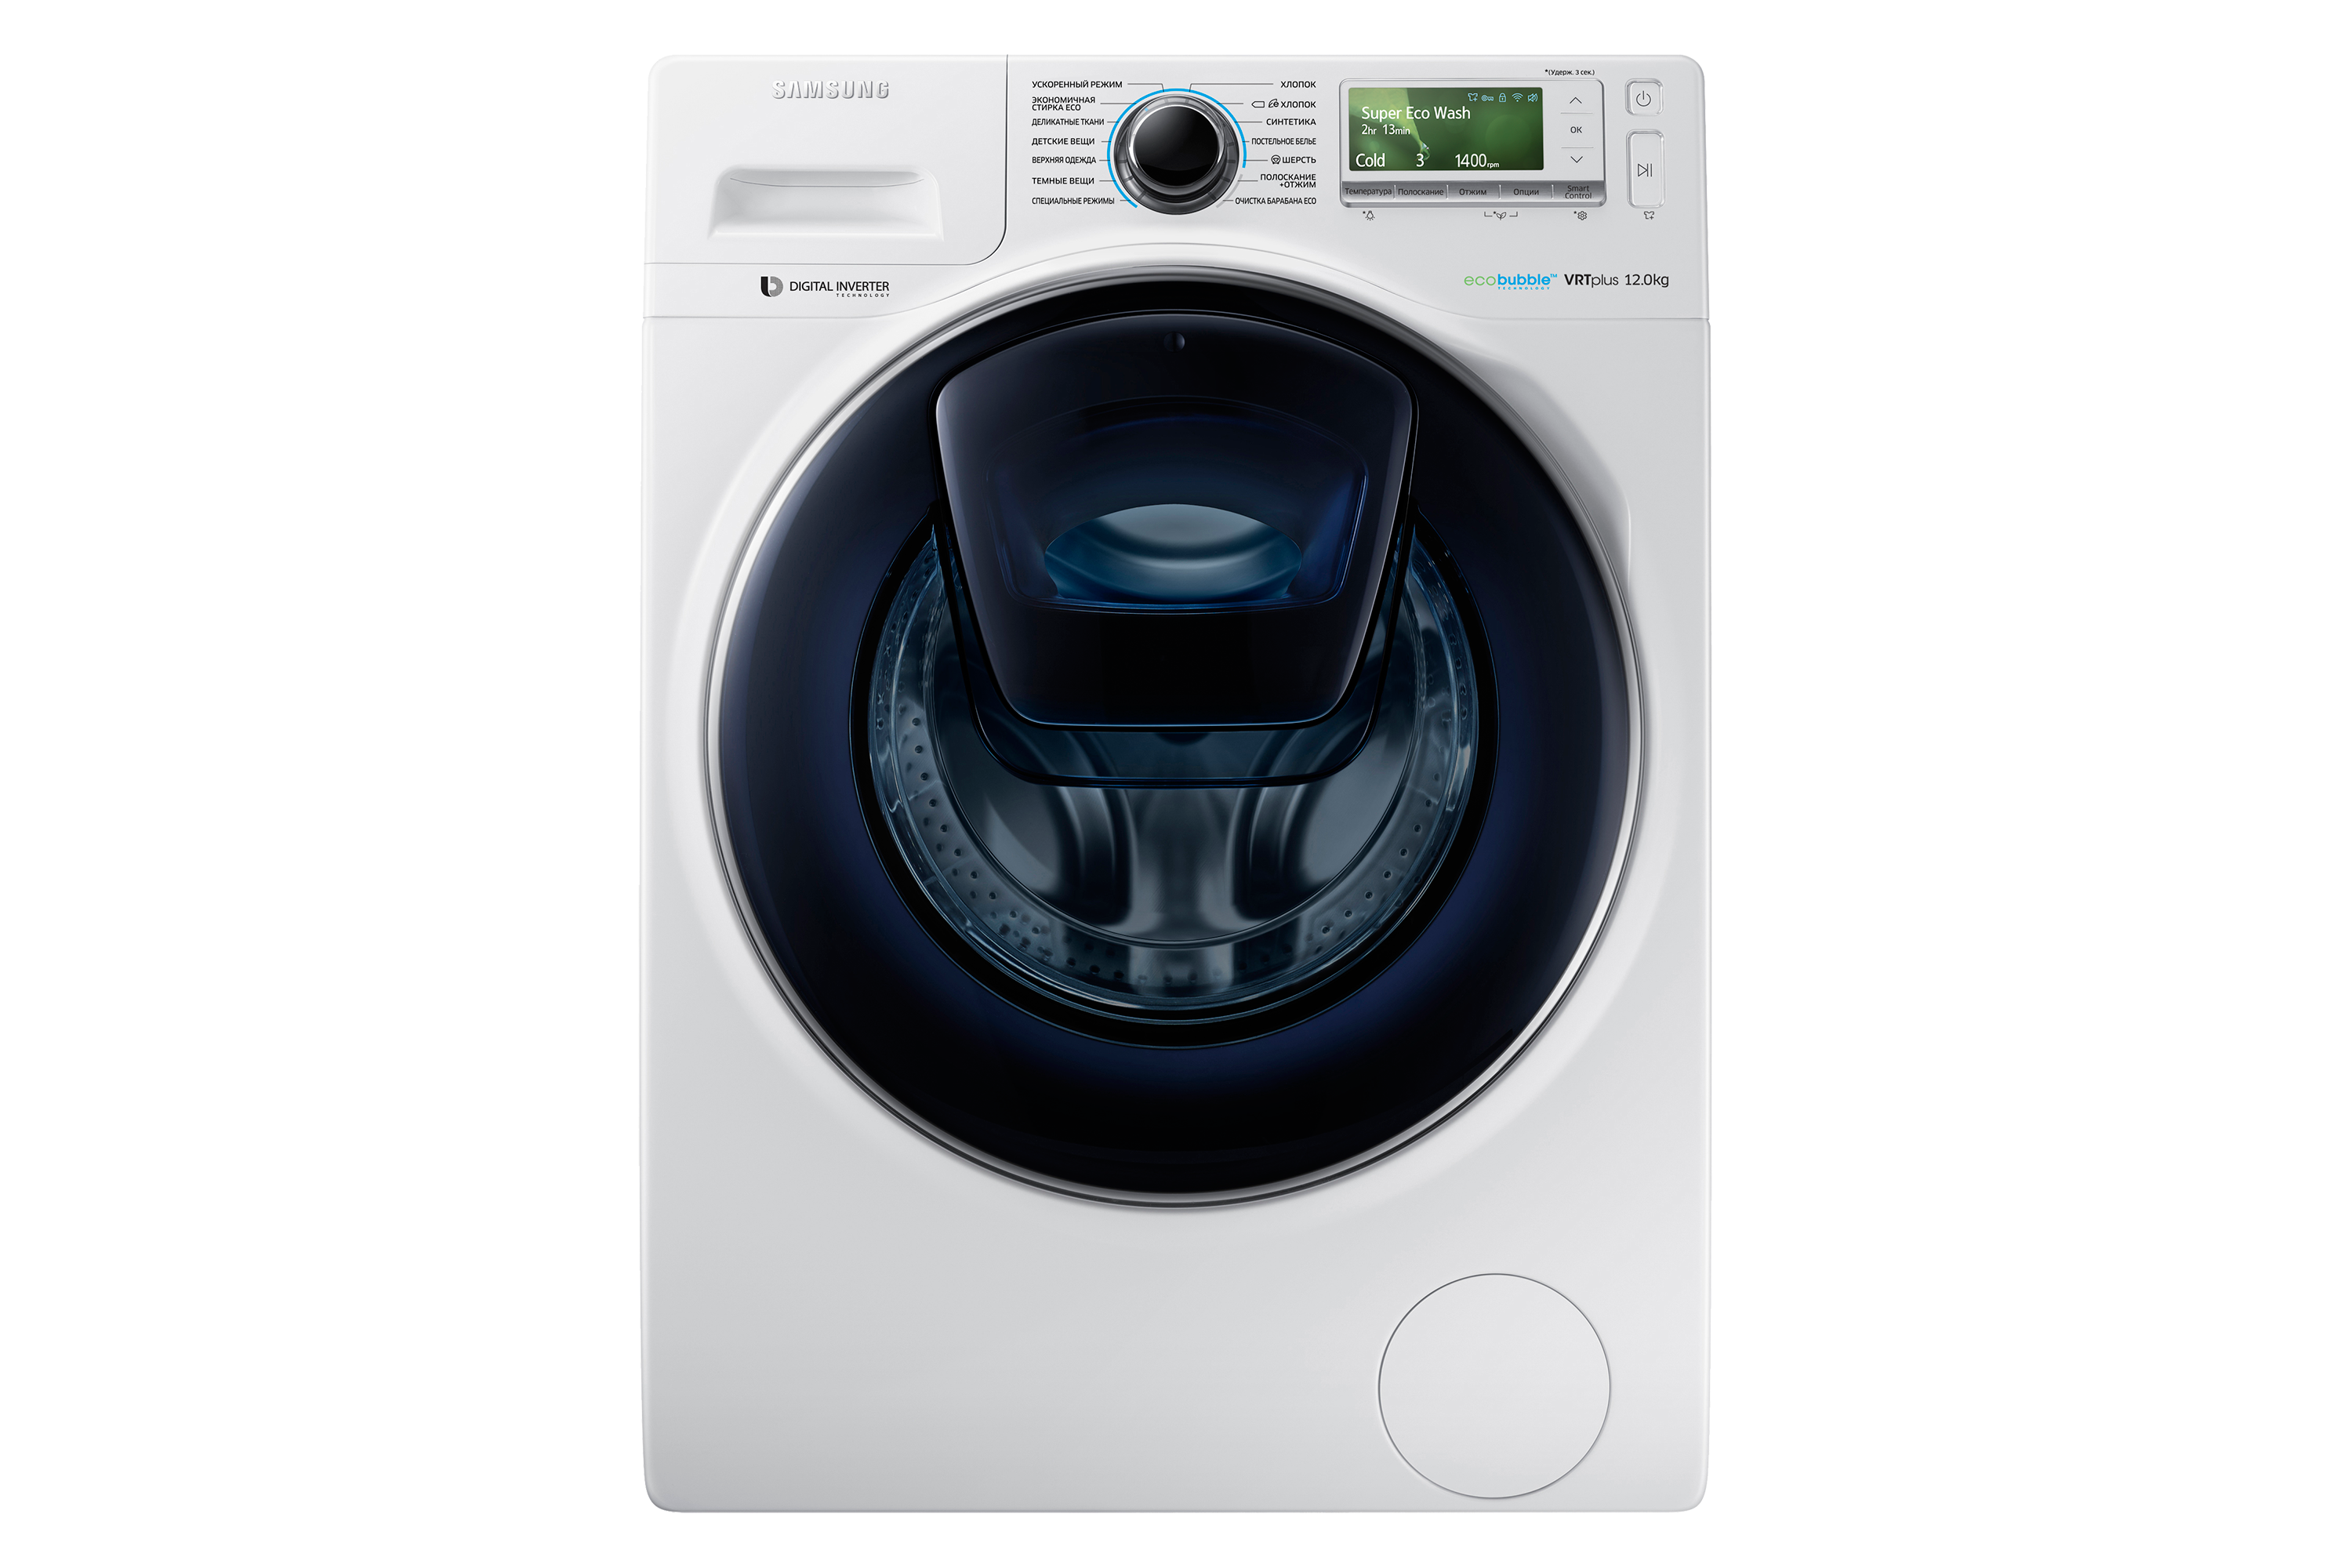 Пральна машина WW8500 з технологією AddWash та Eco Bubble, 12 кг